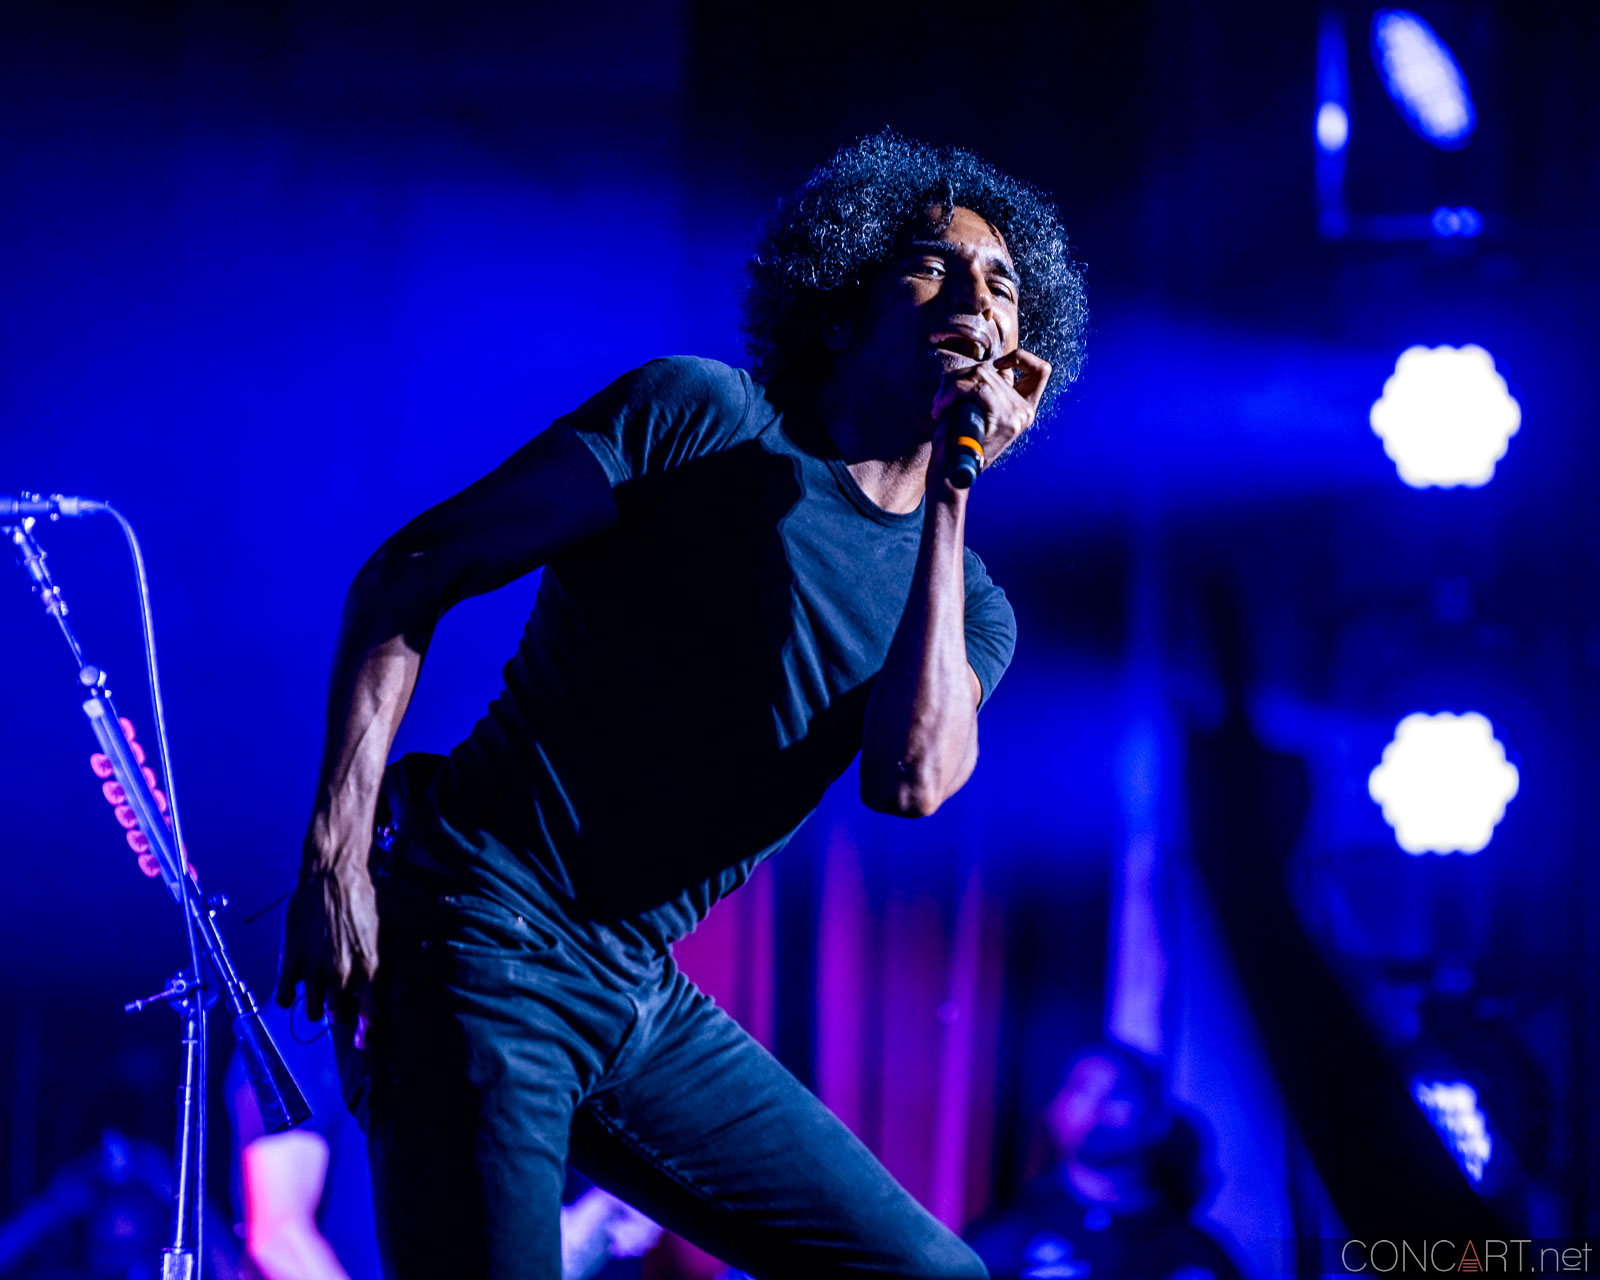 Alice In Chains photo by Sean Molin 11